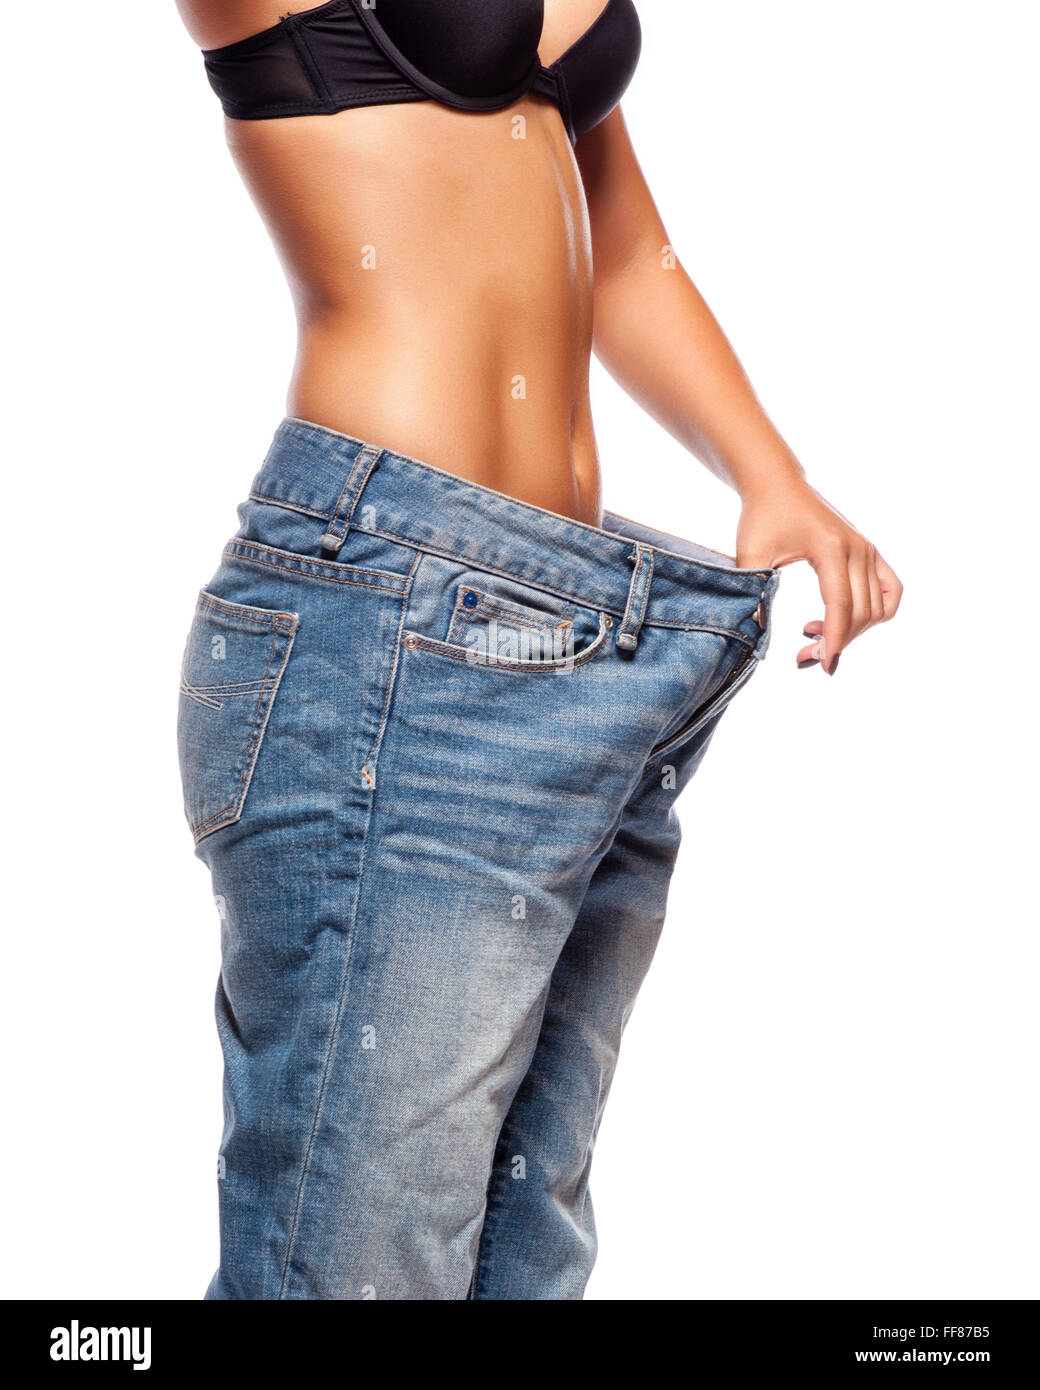 Background image too big - Close Up Of A Woman Belly In Too Big Pants Against White Background